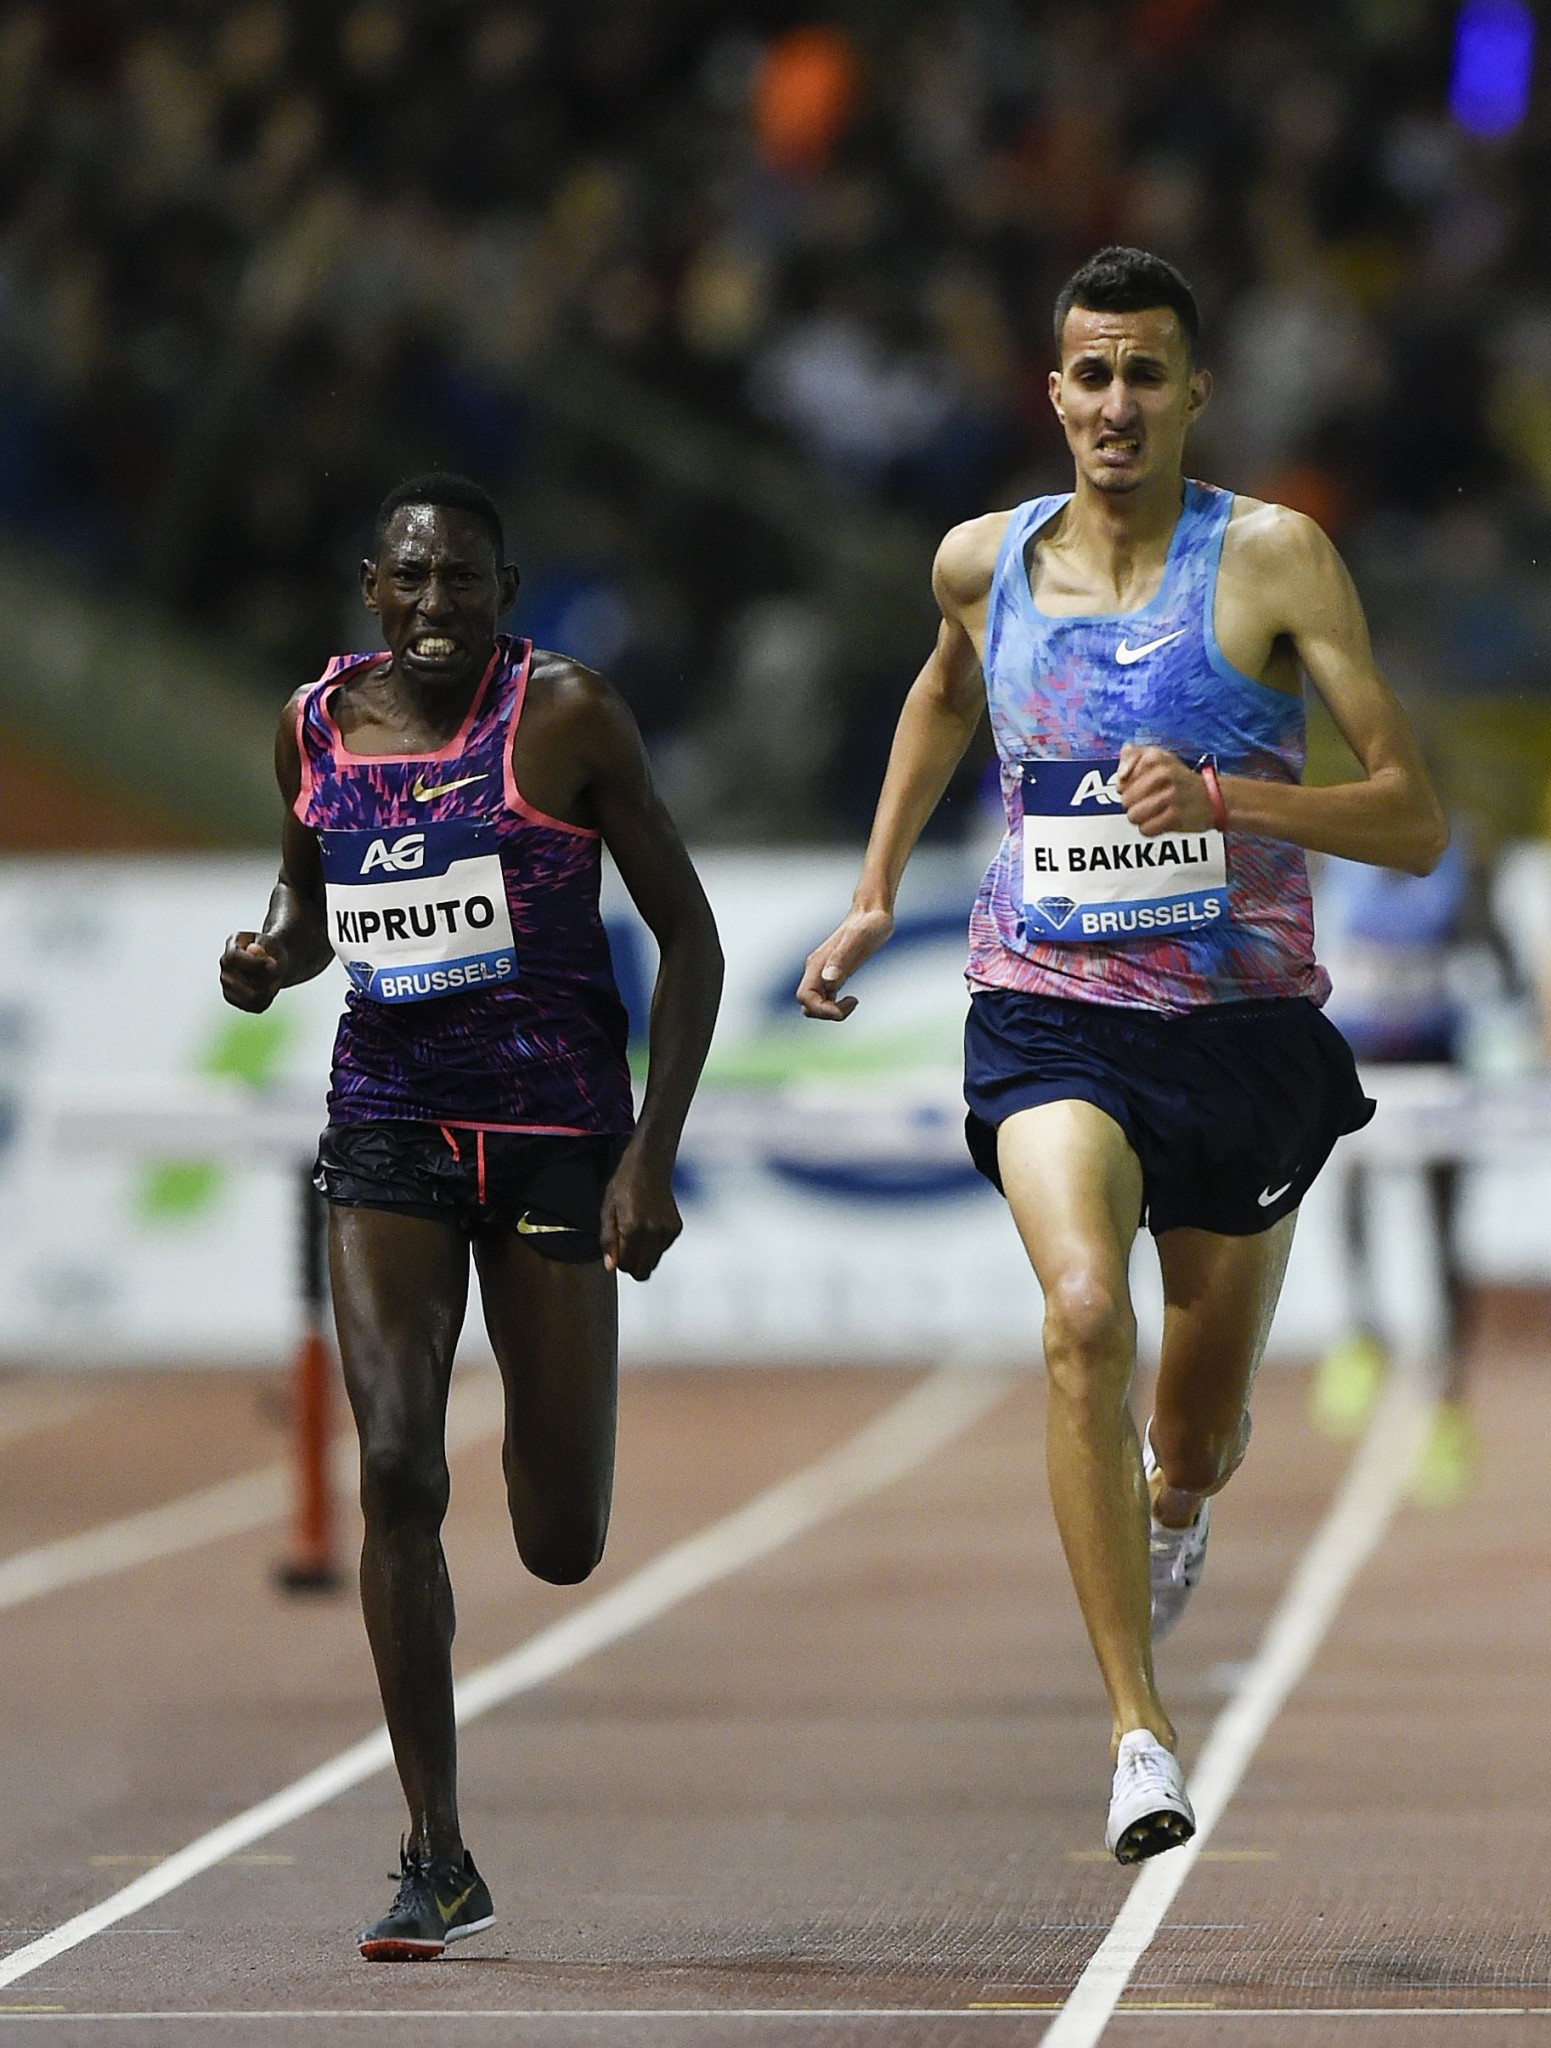 Kenya's world and Olympic 3,000m steeplechase champion Conseslus Kipruto chases down Morocco's Soufiane El Bakkali to win at the IAAF Diamond League final in Brussels tonight ©Getty Images